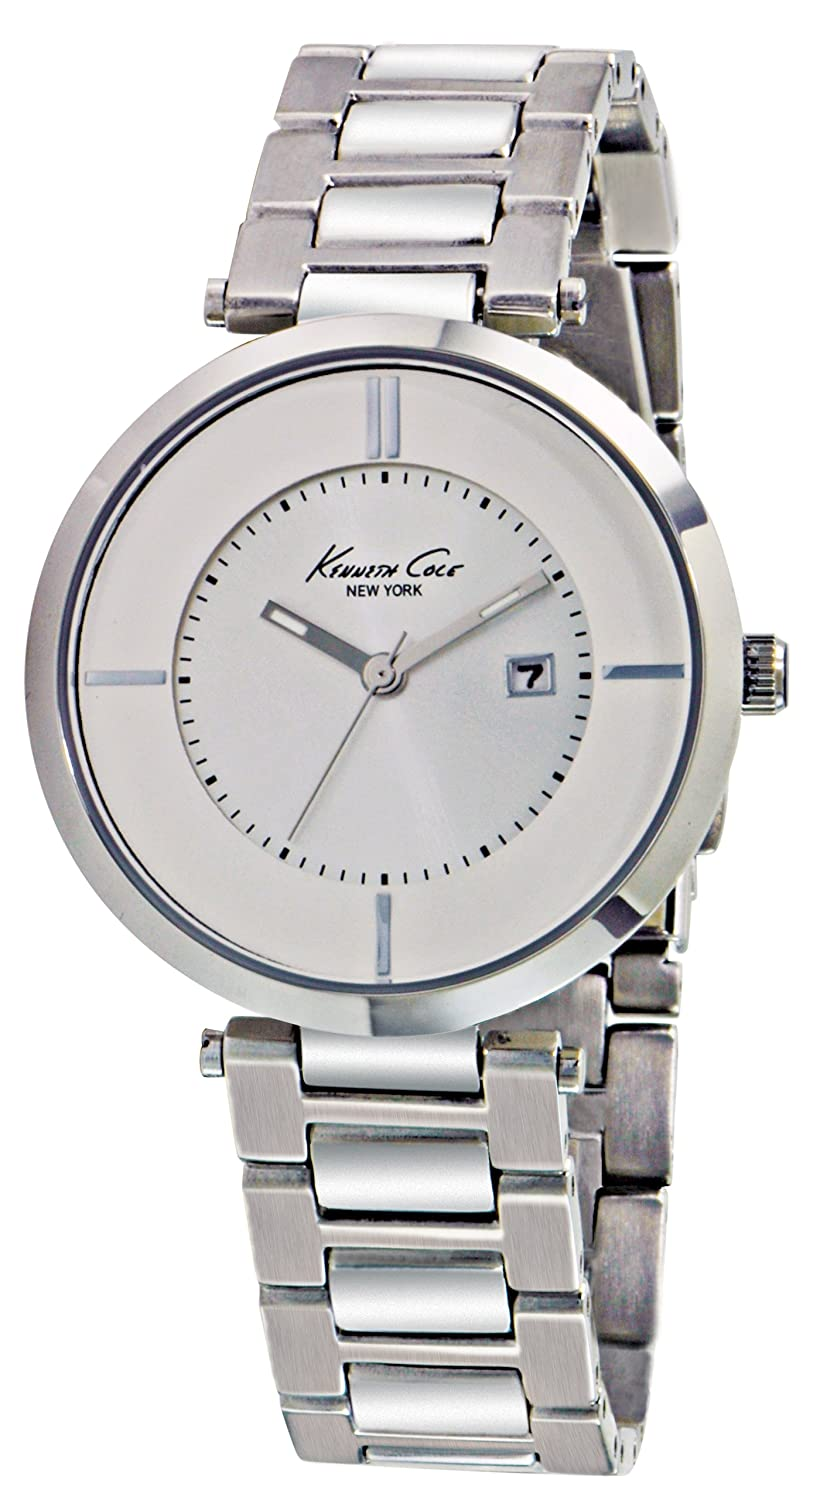 Amazon.com: Kenneth Cole New York Womens Analog Quartz Stainless Steel Case Stainless Steel Bracelet Silver,(Model:KC4708): Kenneth Cole: Watches